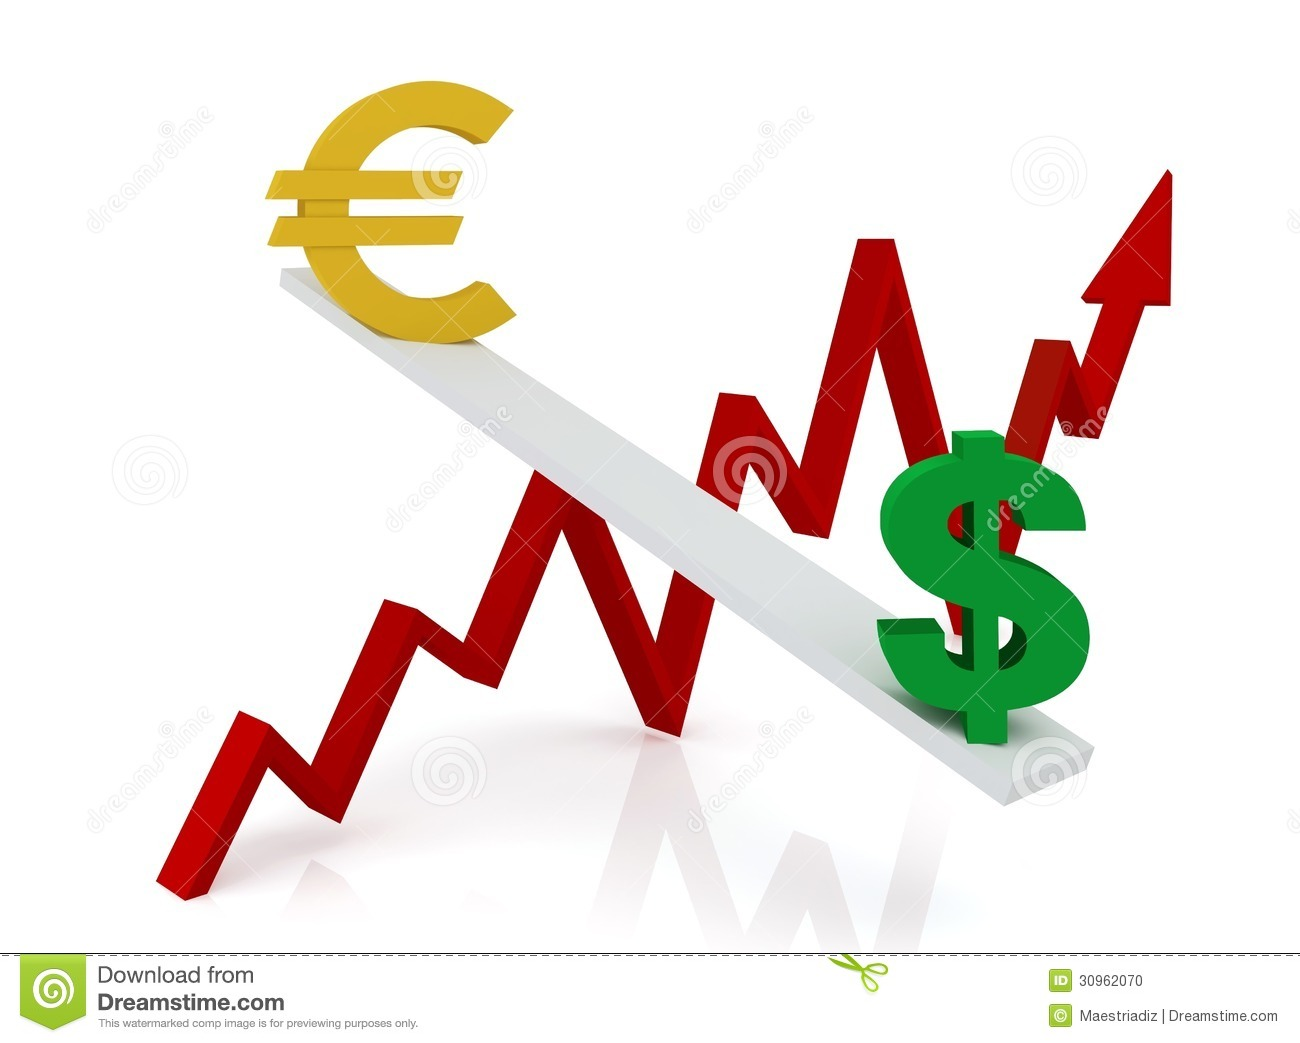 Forexticket fr conversion monnaie